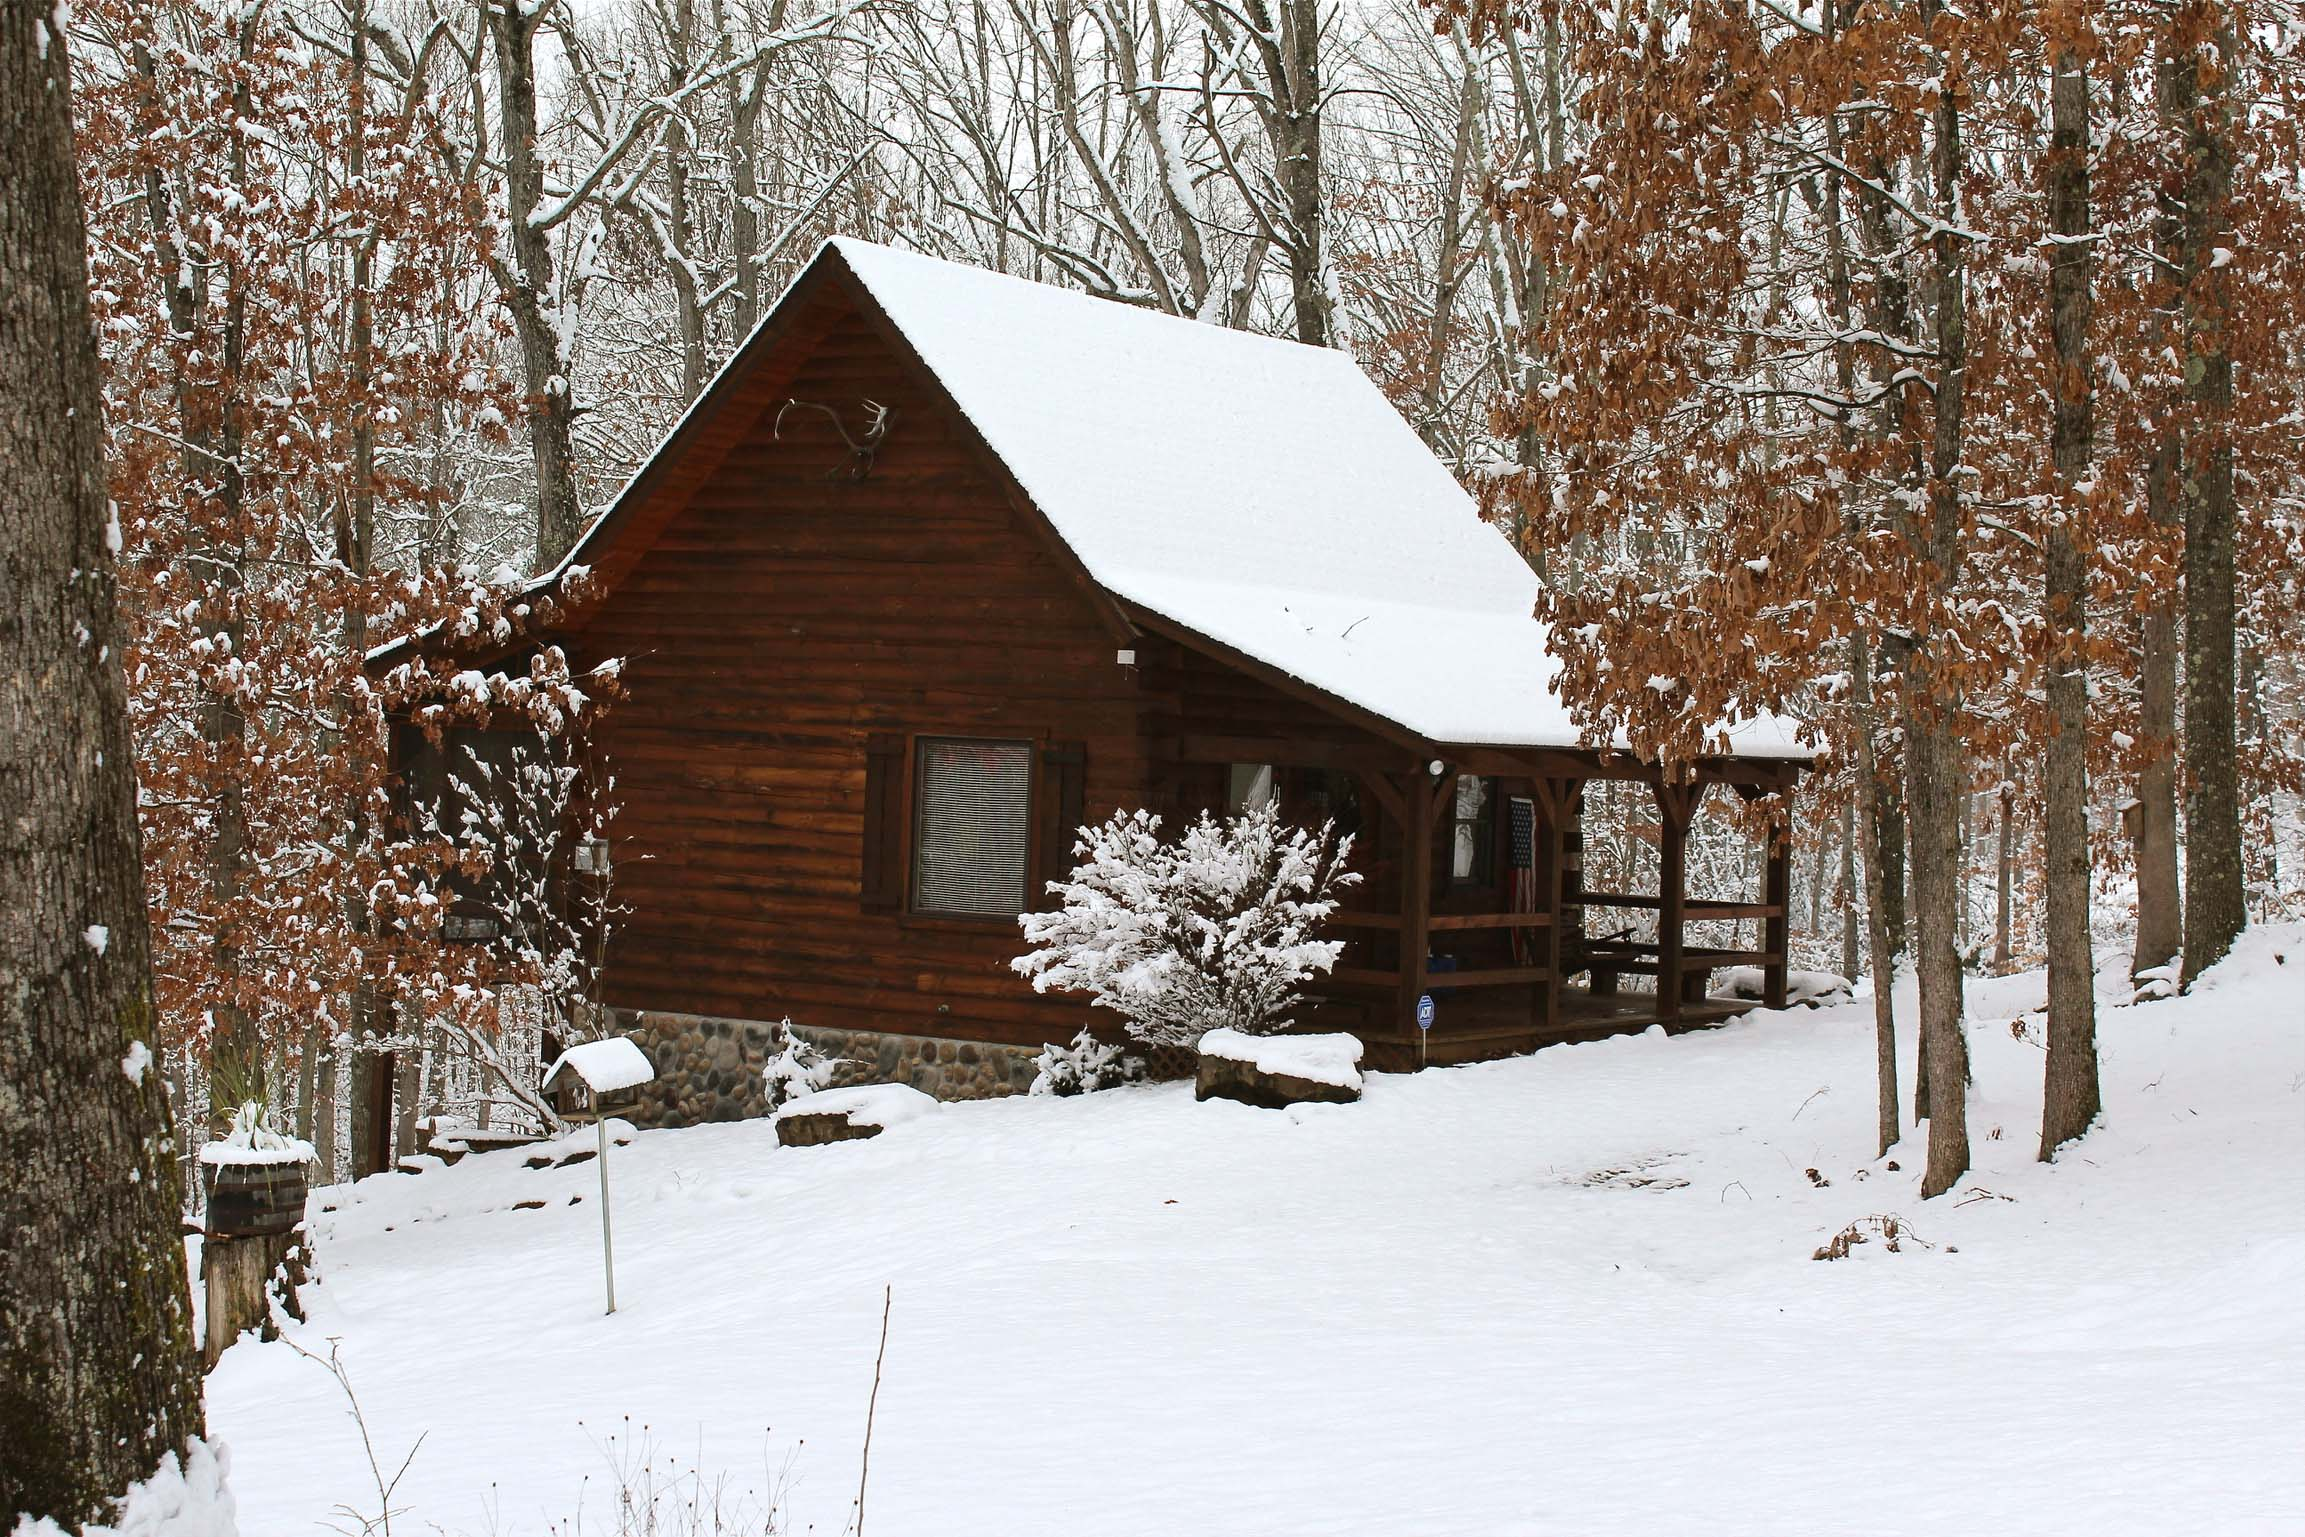 The Cardinal Cabin - The change of season accentuates the beauty of this scenic and serene landscape.